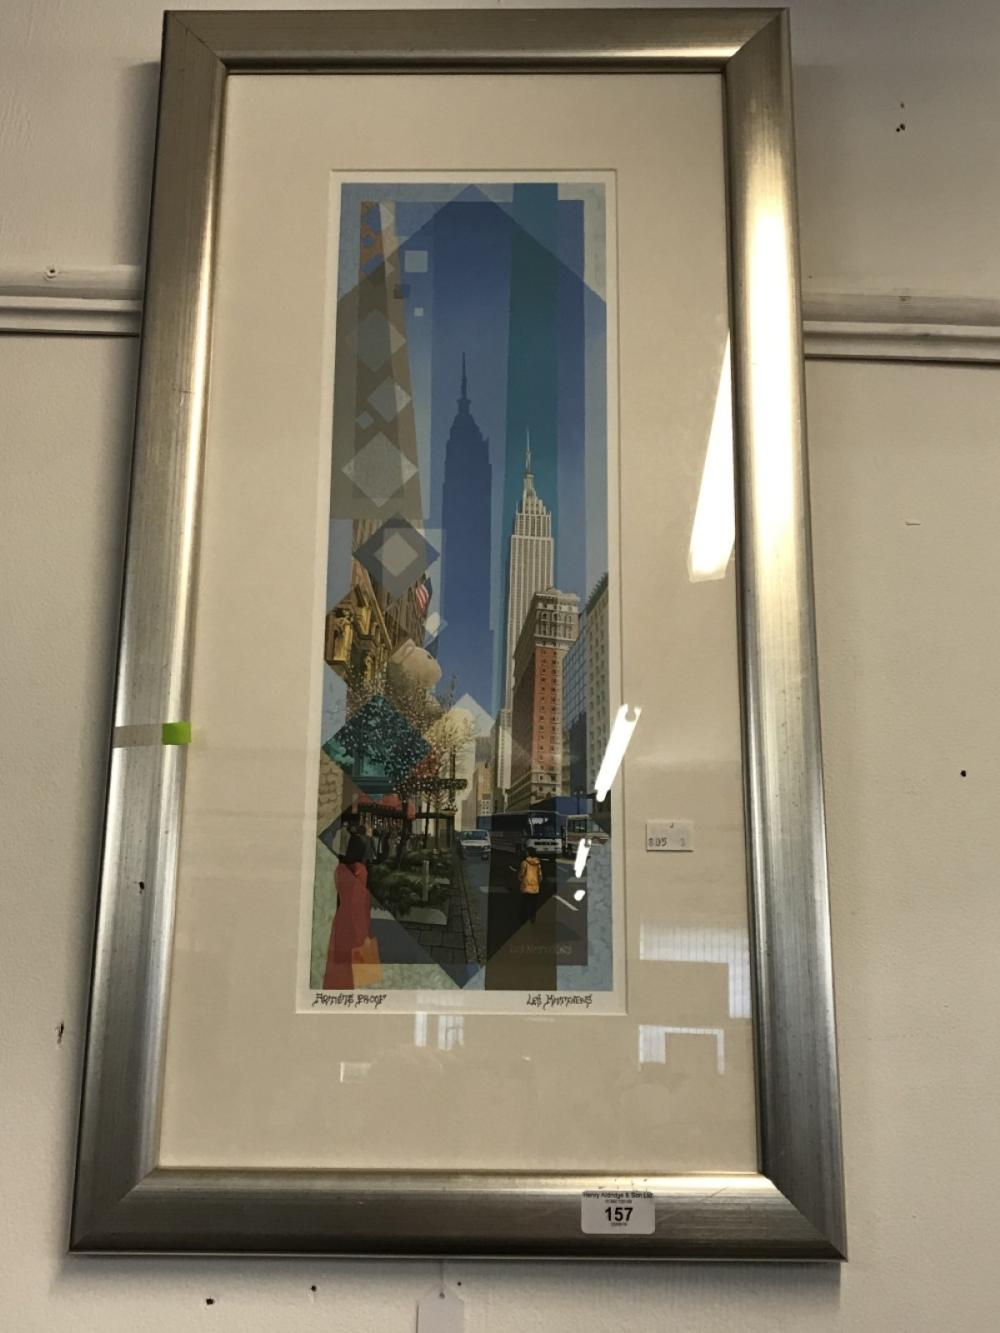 Les Matthews: 20th cent. Artists proof, limited edition print on paper of the Empire State Building.